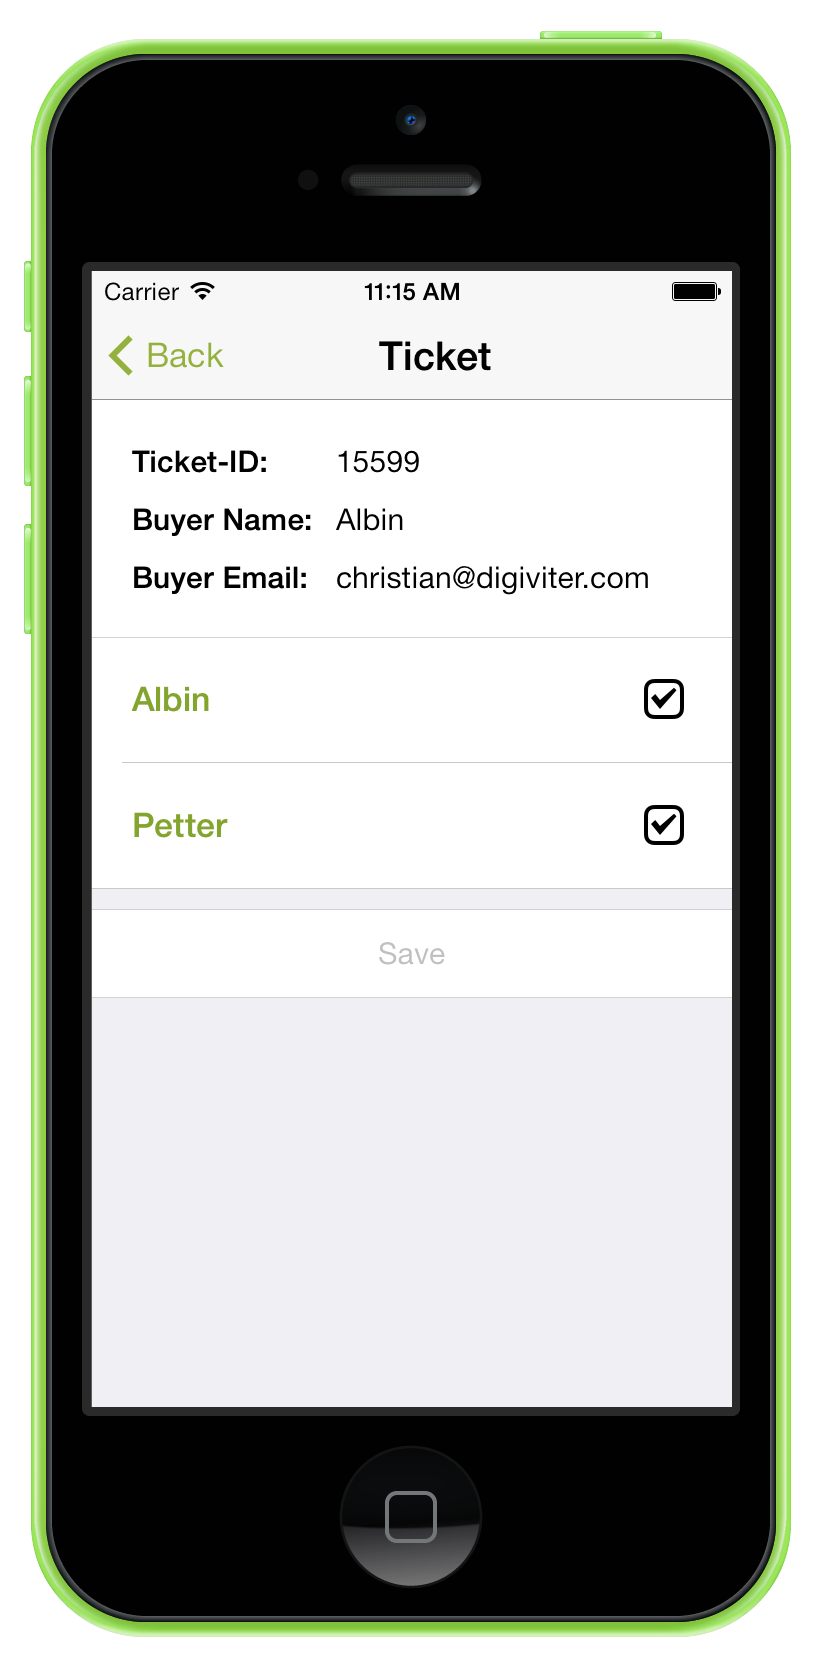 Digiviter_TicketView.png